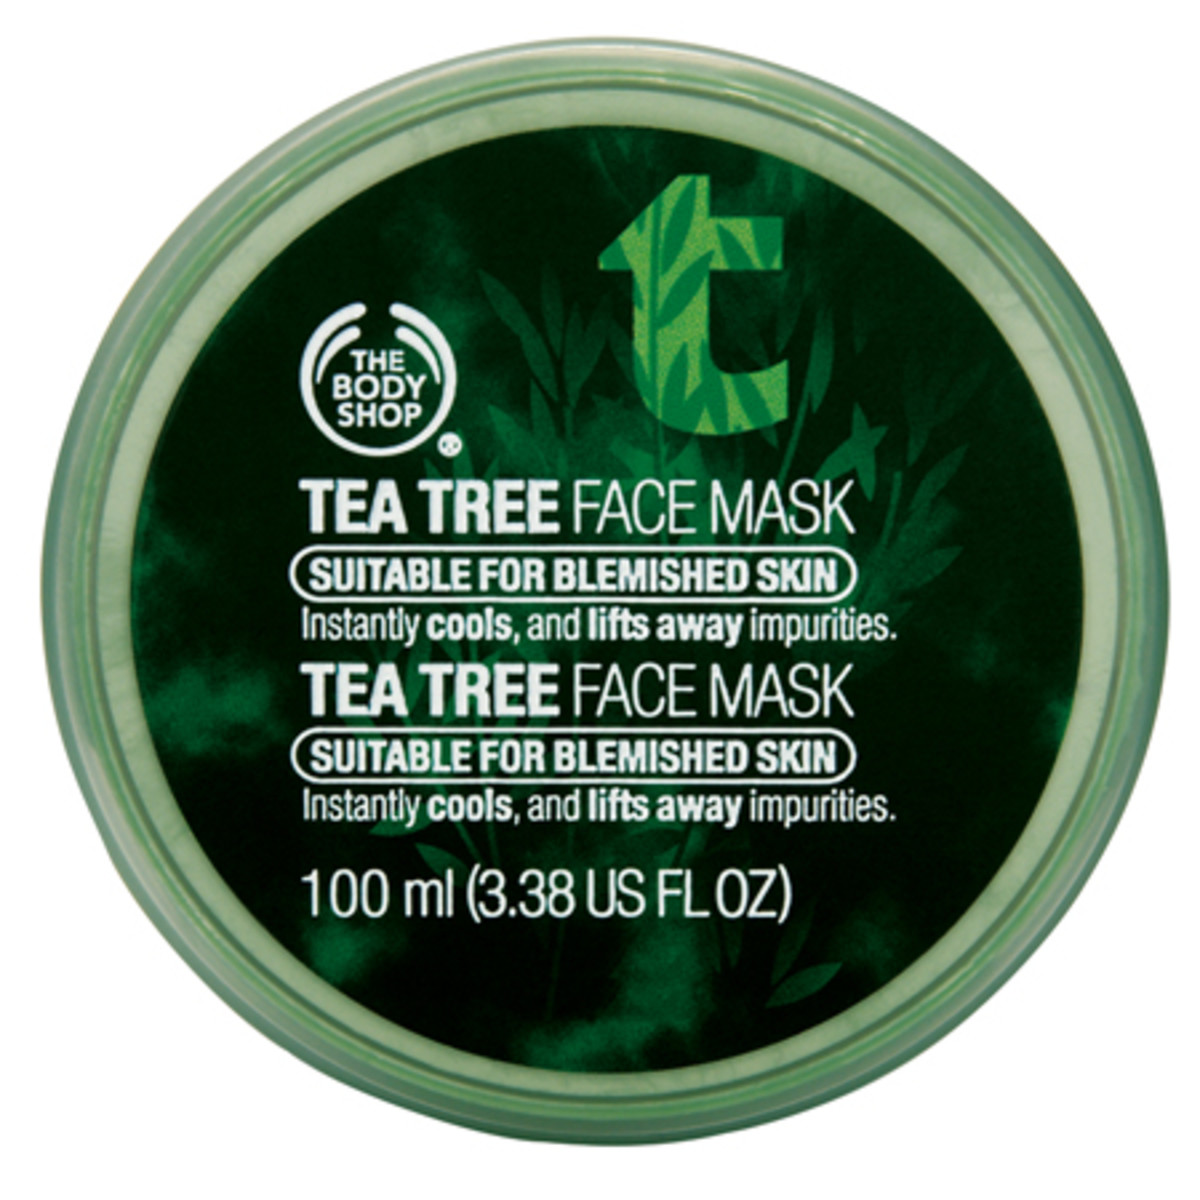 The Body Shop Tea Tree Face Mask, $17, available at The Body Shop.